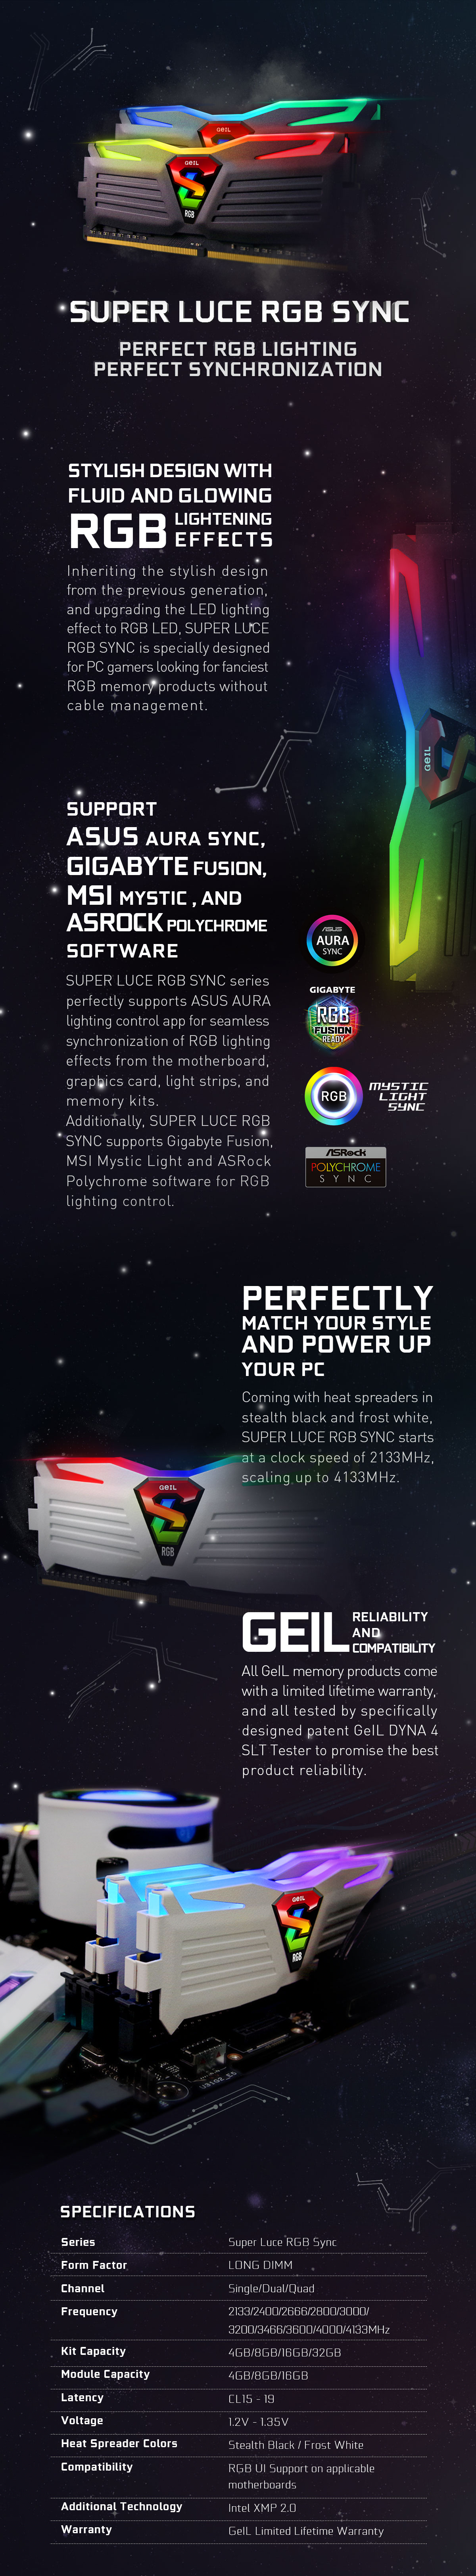 A large marketing image providing additional information about the product GeIL 16GB Kit (2x8GB) DDR4 SUPER LUCE RGB SYNC White Edition C19 2666MHz - Additional alt info not provided